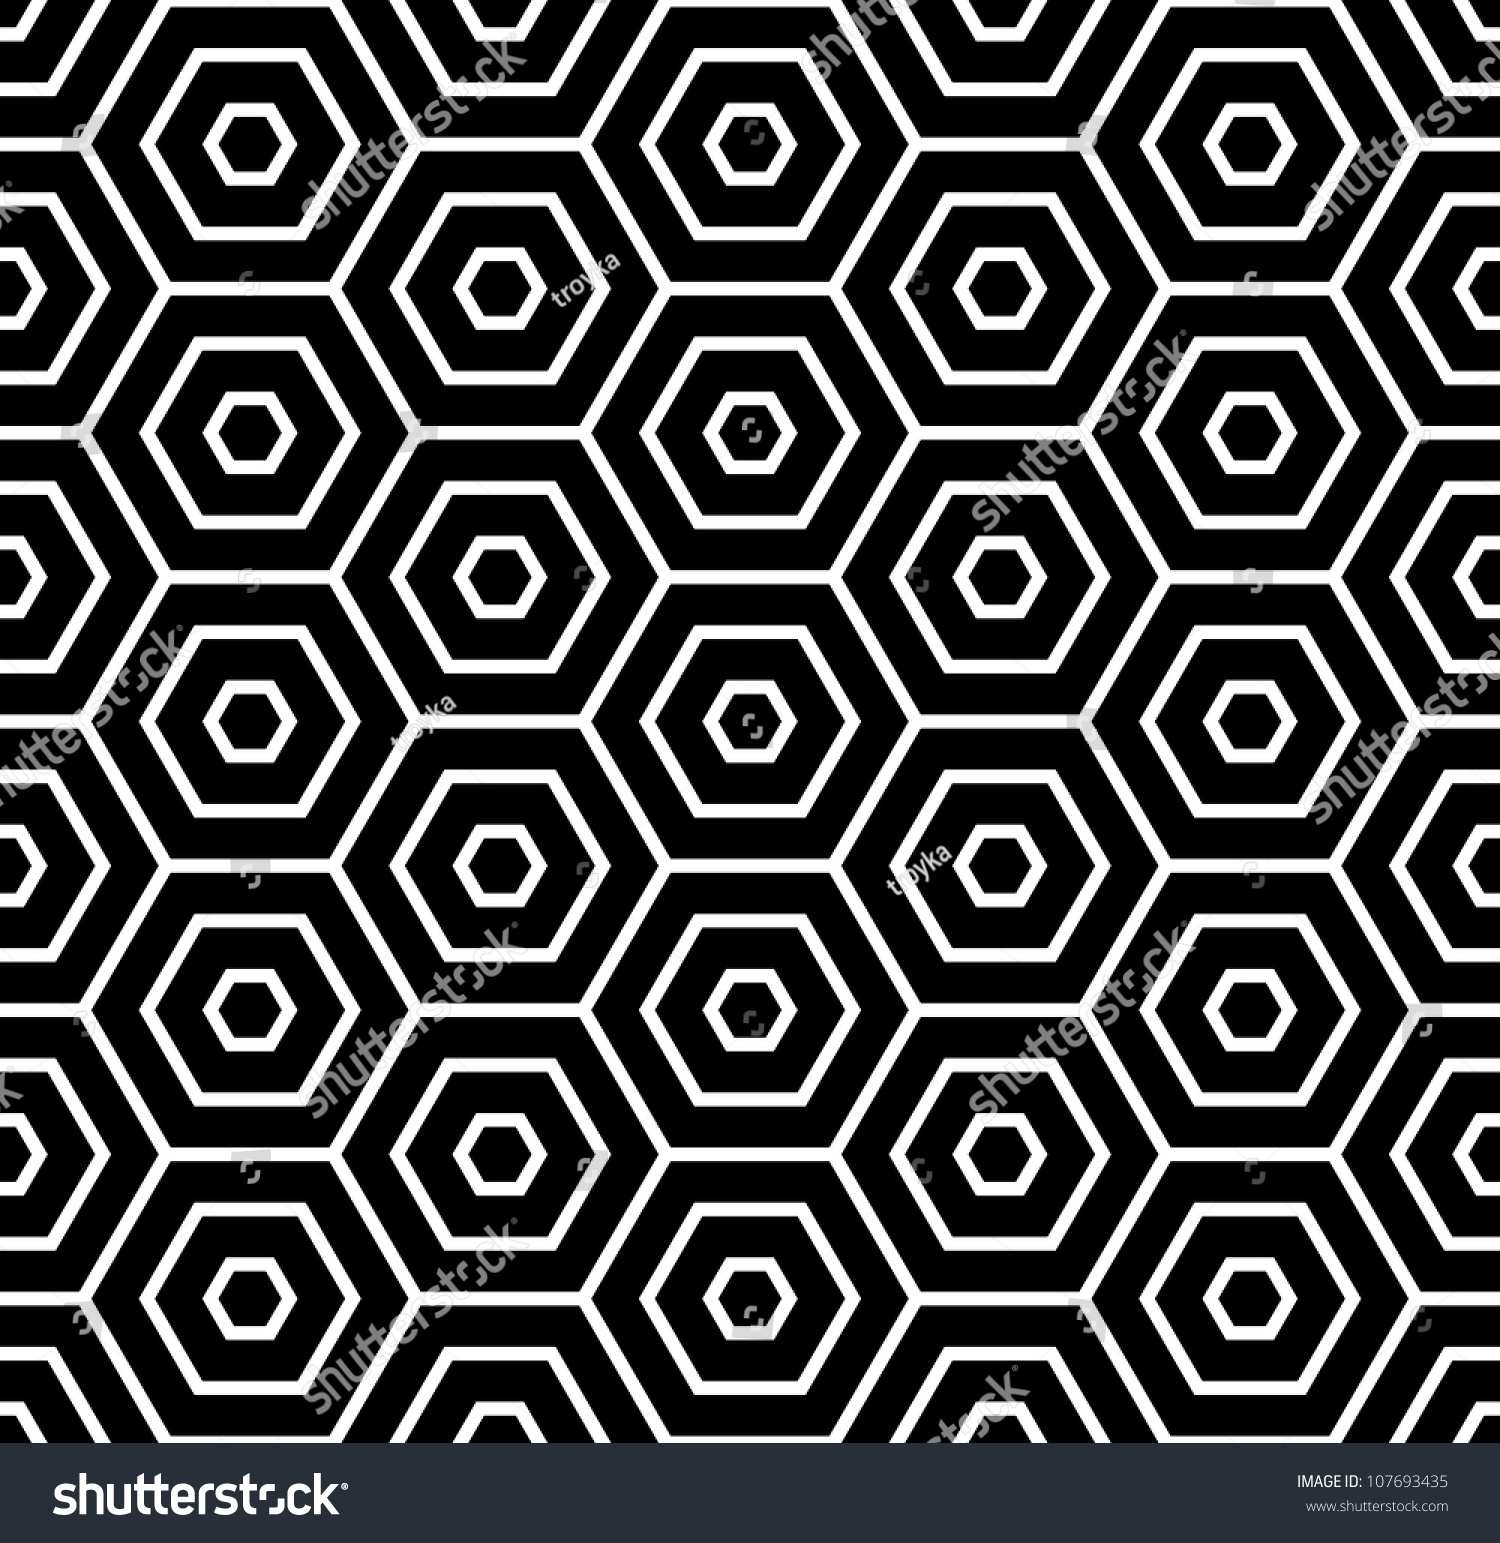 Hexagons texture seamless geometric pattern vector stock for Object pool design pattern